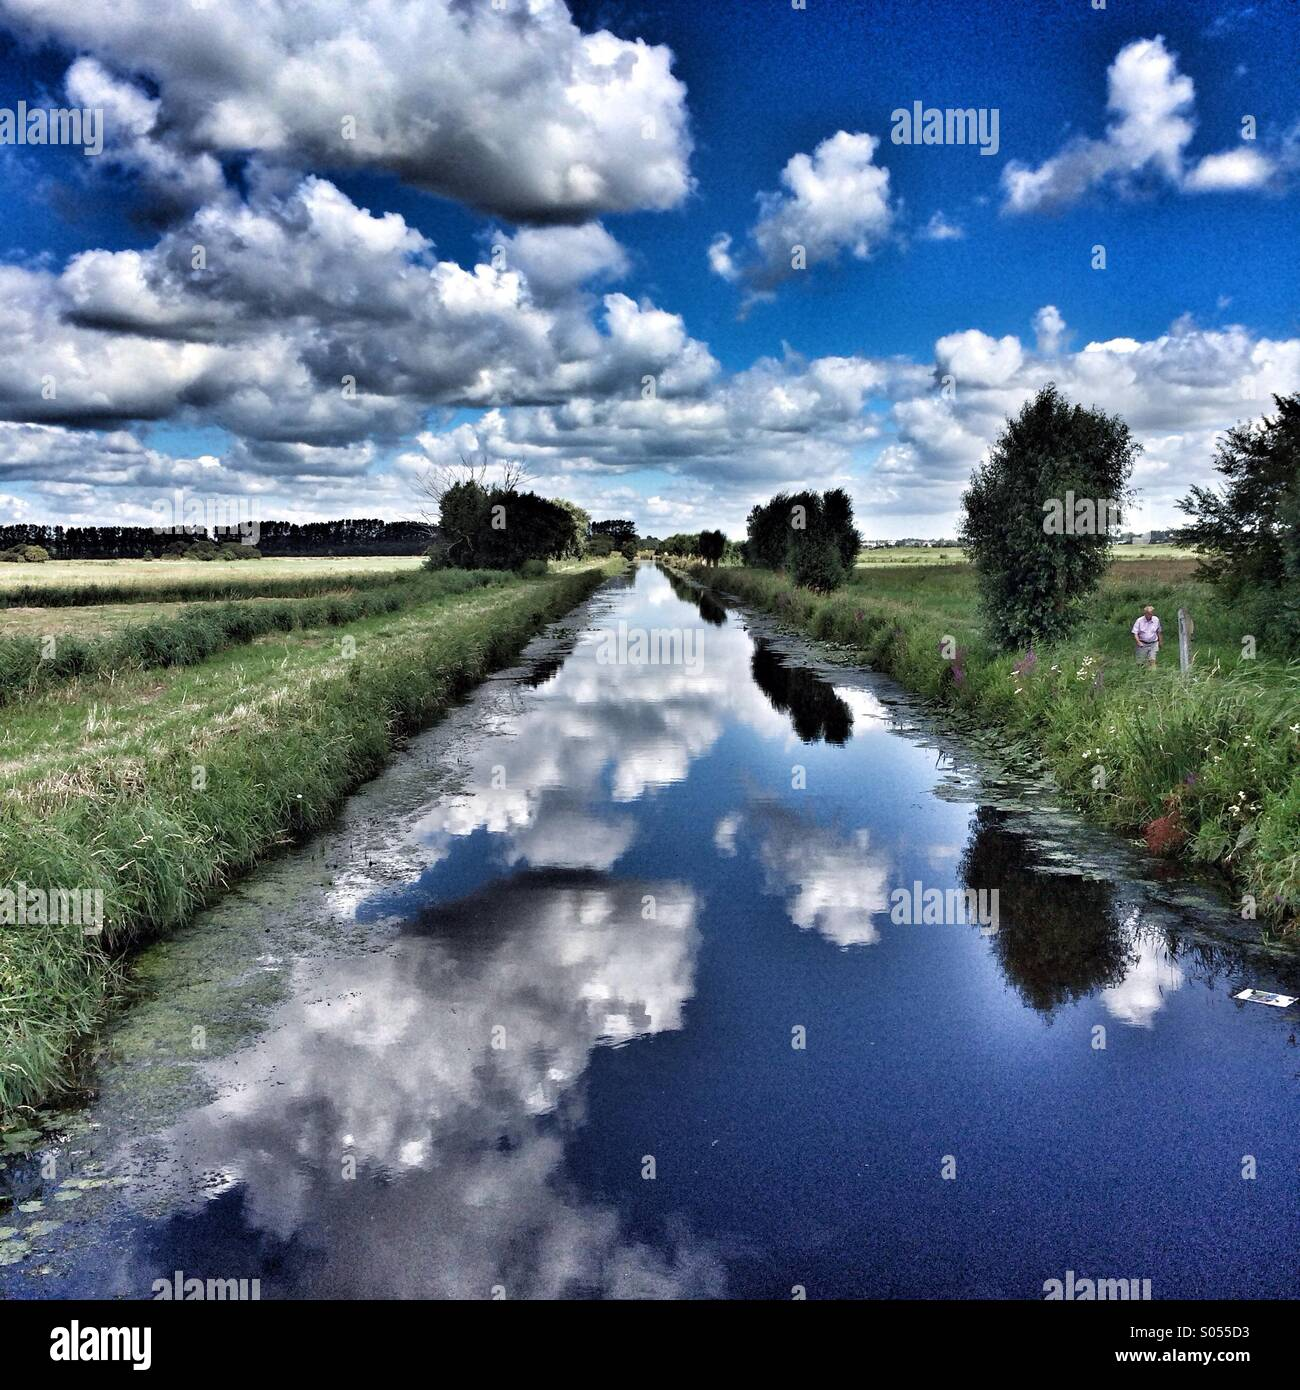 Cloud reflections - Stock Image